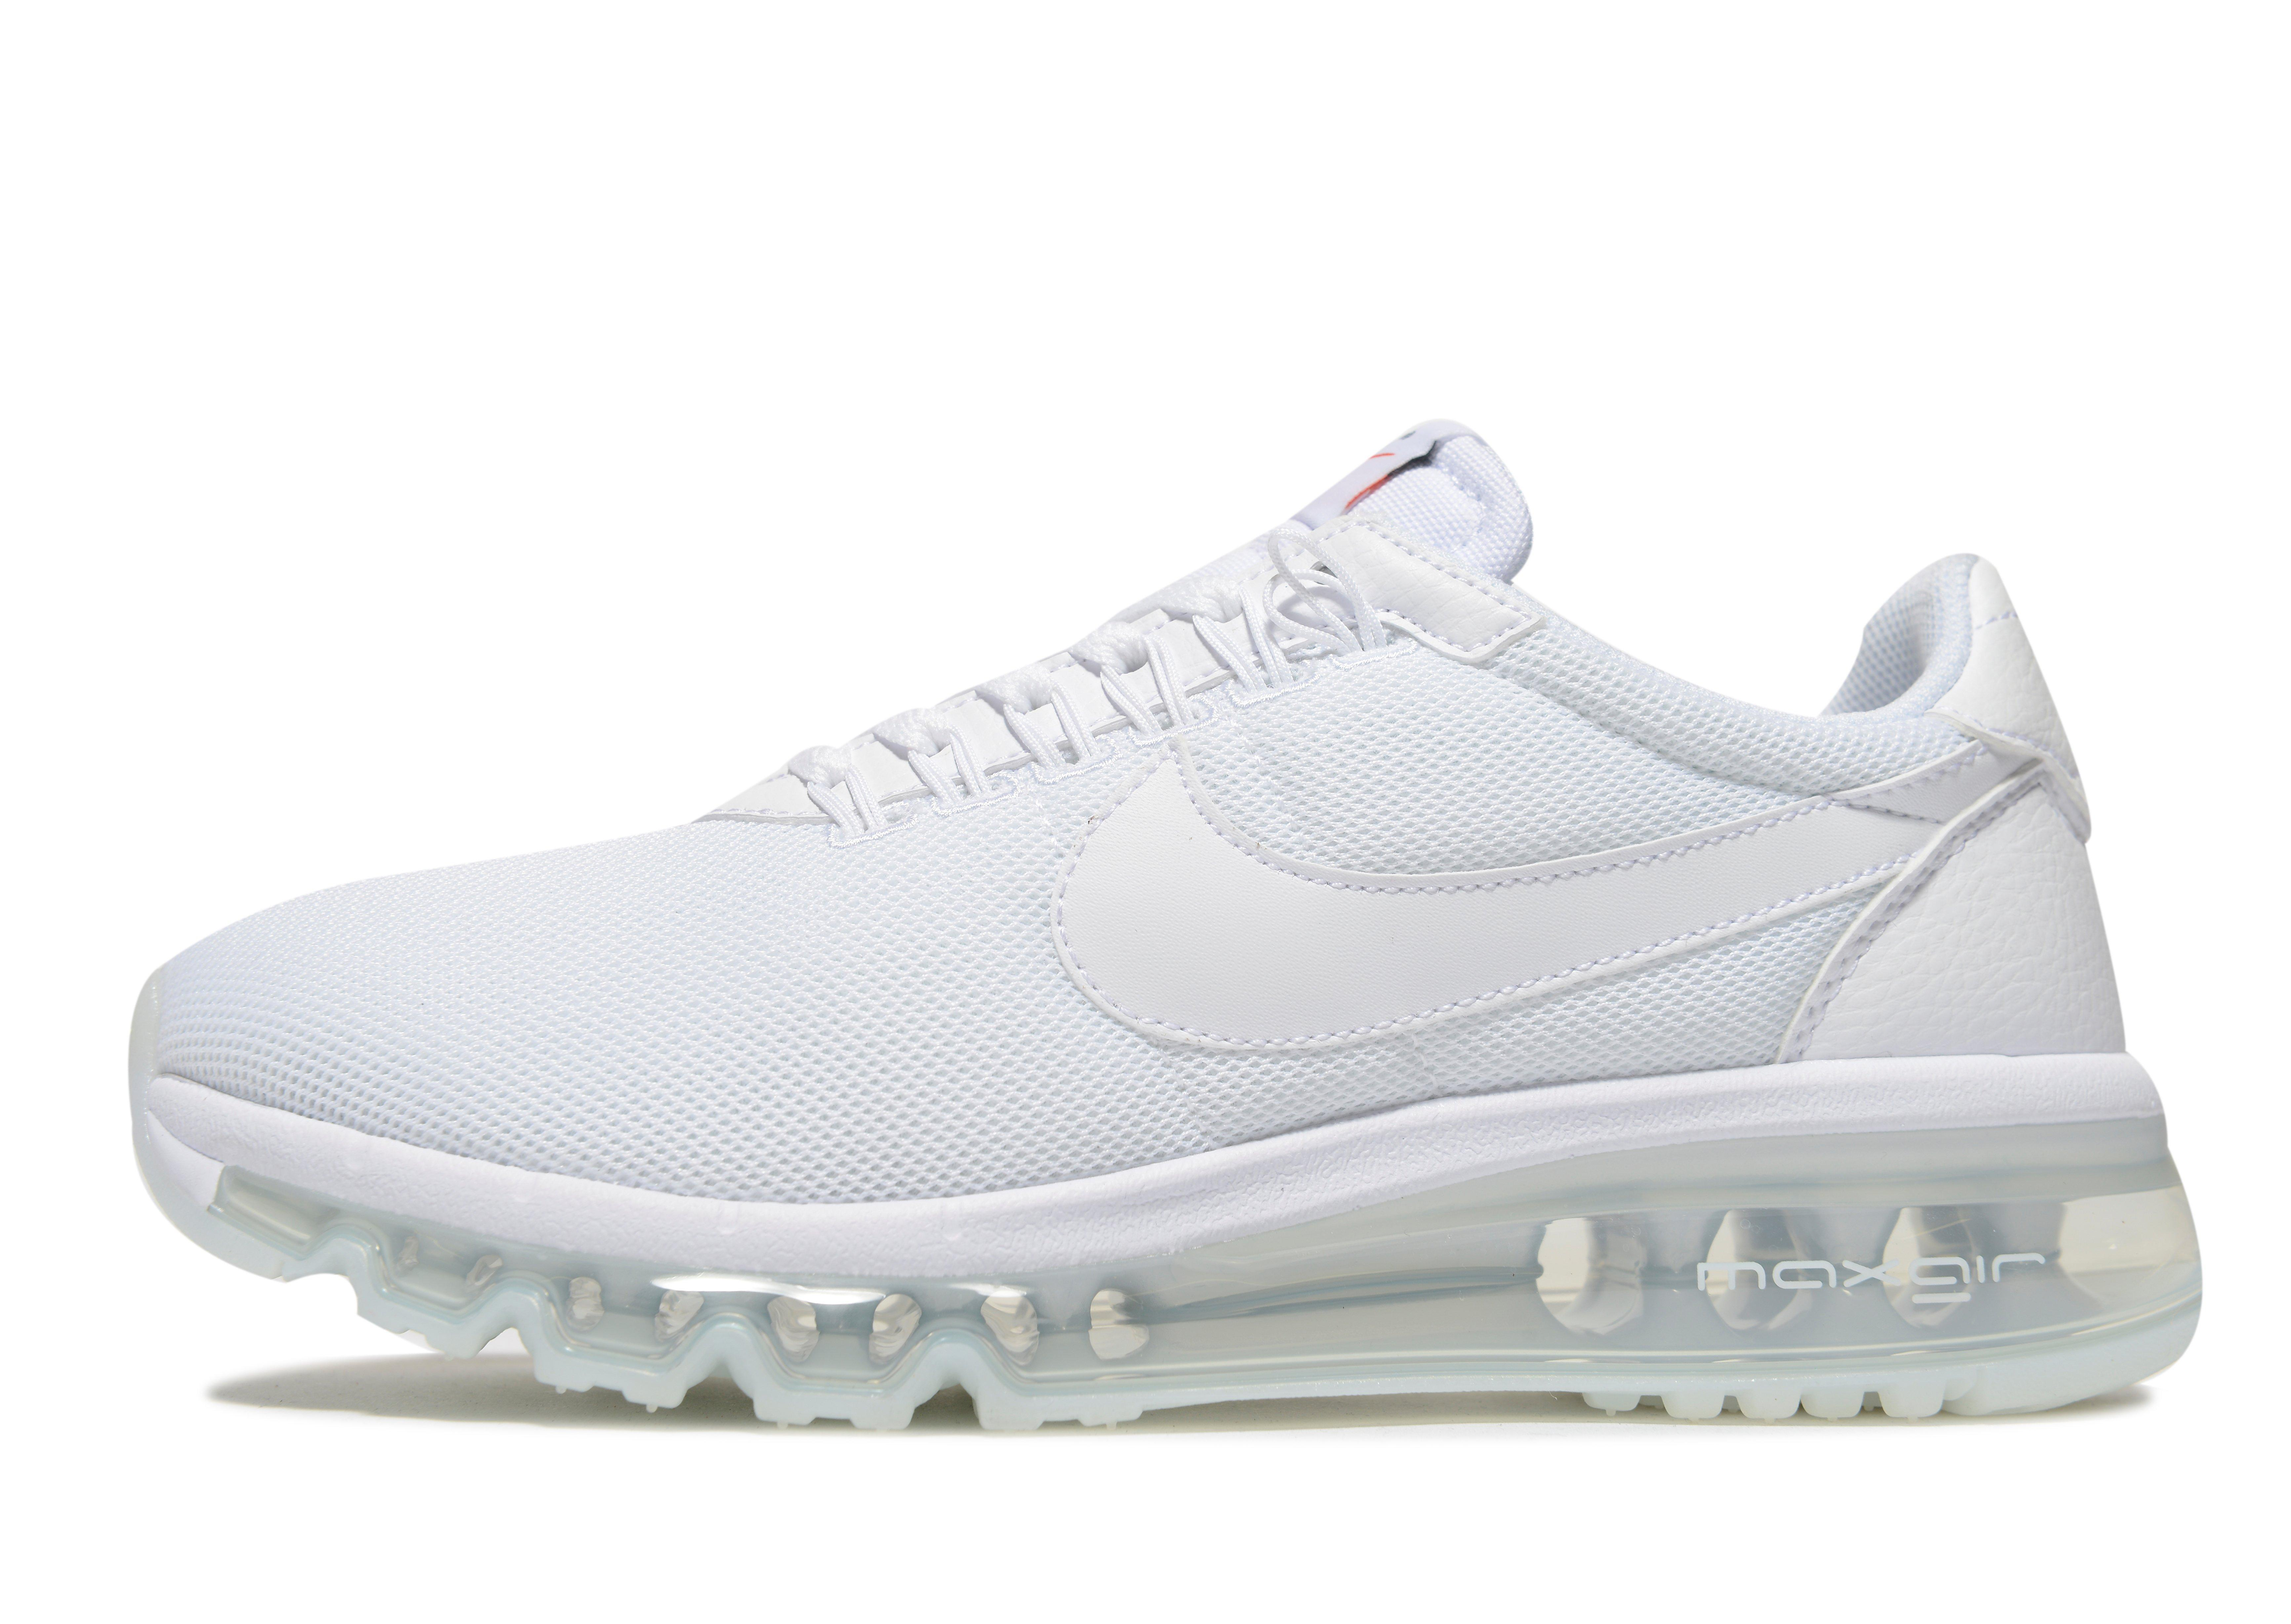 d39bdc15d4 Gallery. Previously sold at: JD Sports · Women's Nike Air Max ...